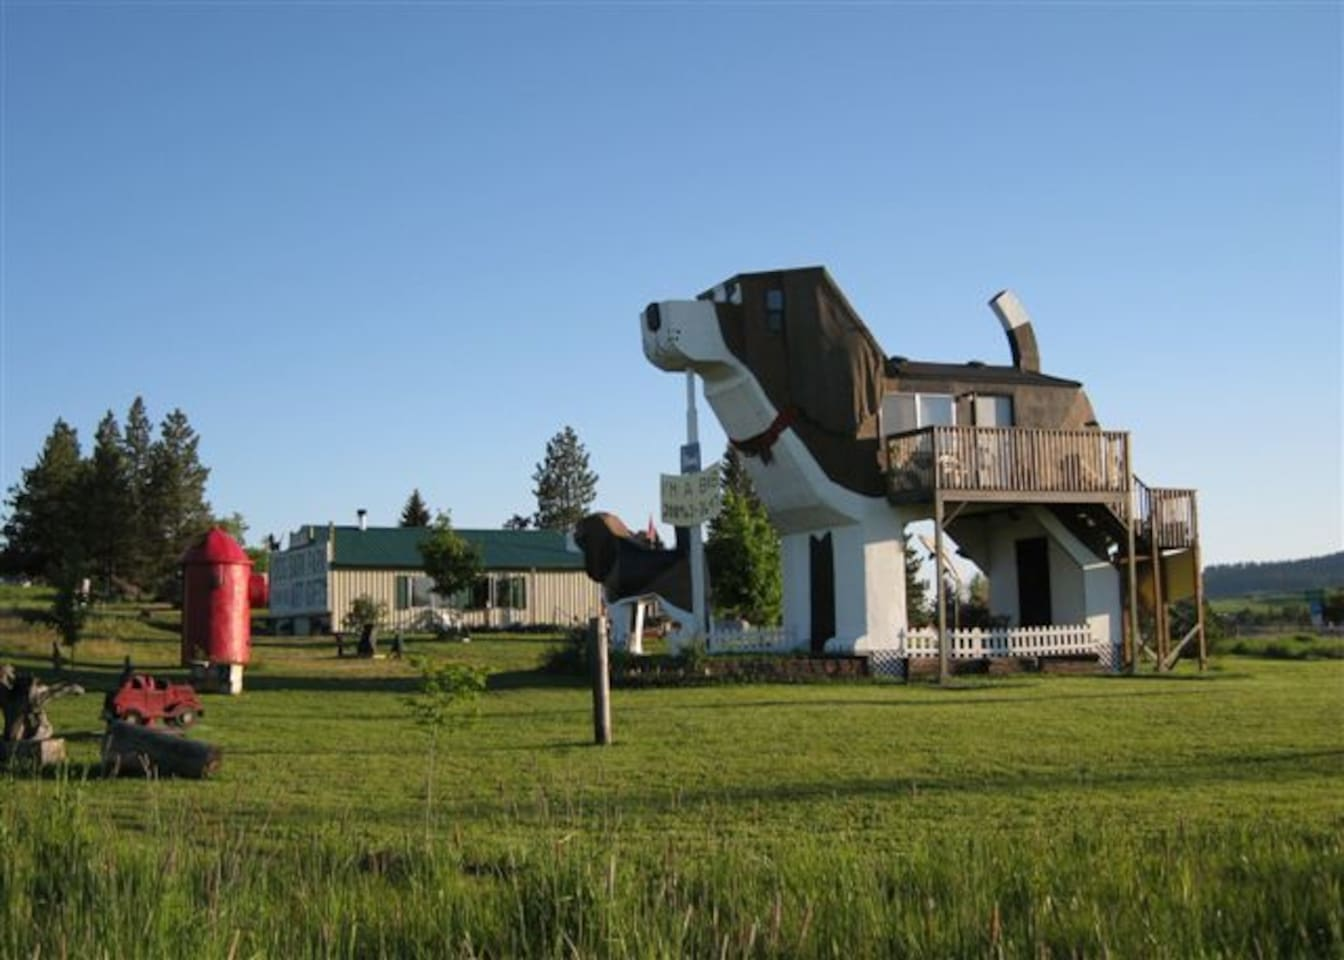 Expanded view of Dog Bark Park, including a giant red fire hydrant